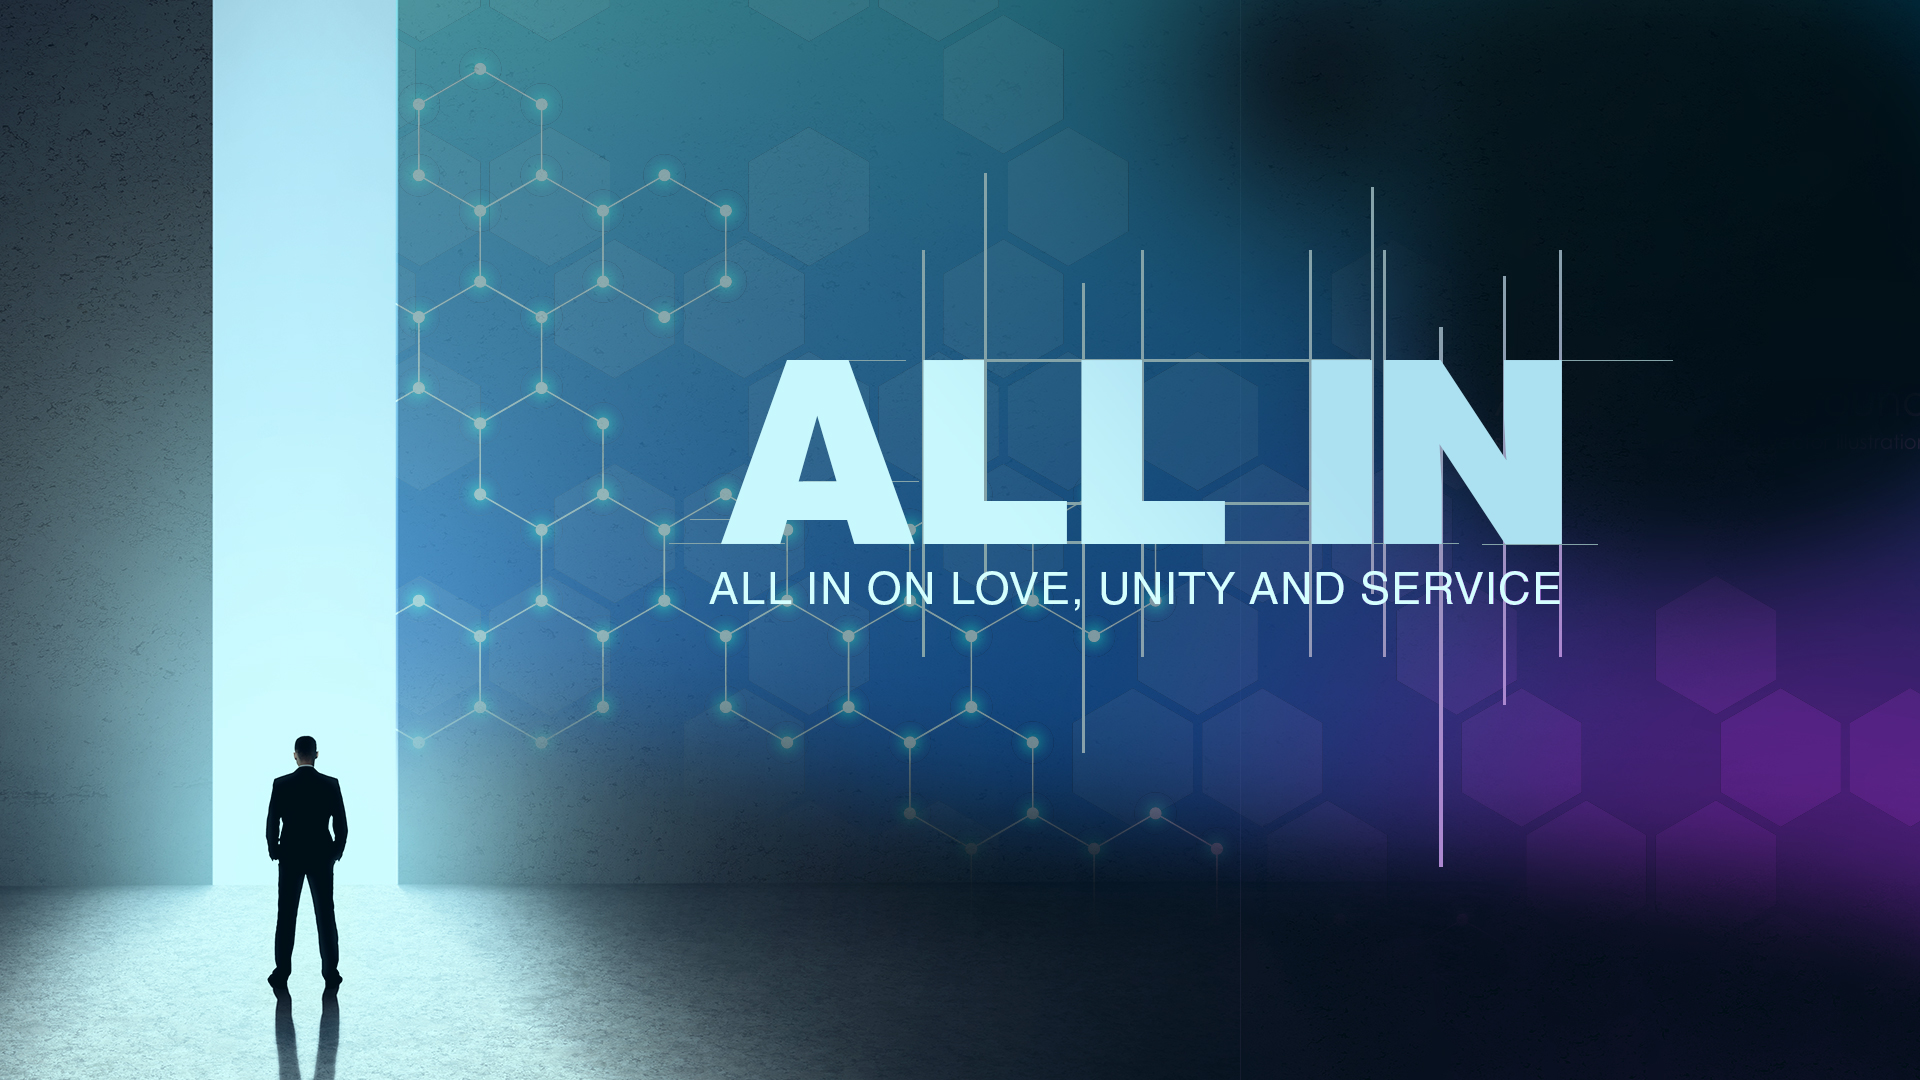 All In on Love, Unity, and Service